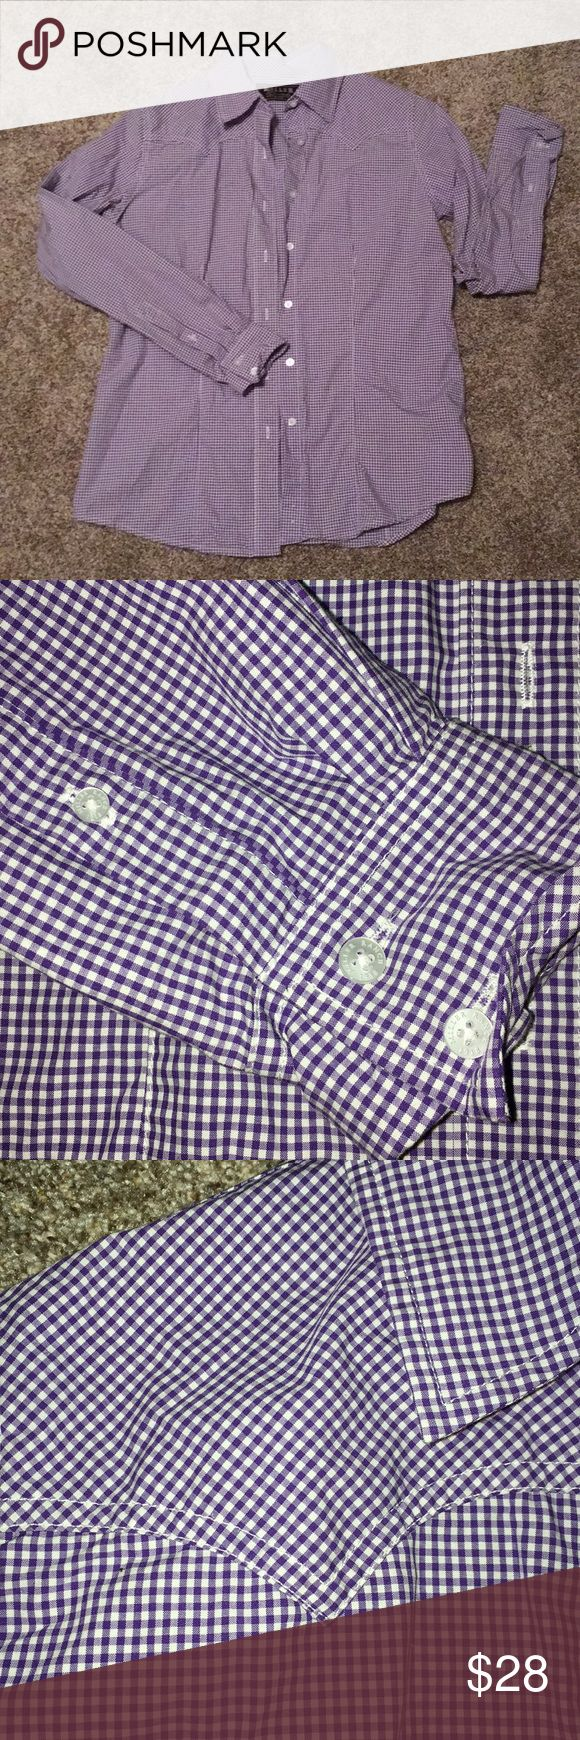 "Miller Ranch Denver Colorado purple plaid shirt Excellent used condition. Miller Ranch western style women's shirt purple and white. Tailored fit button up with western look. Originally $74.99. Super cute with jeans and boots. Underarms across almost 20"" shoulder to bottom 26"" sleeves 25"" Miller Ranch Tops Button Down Shirts"